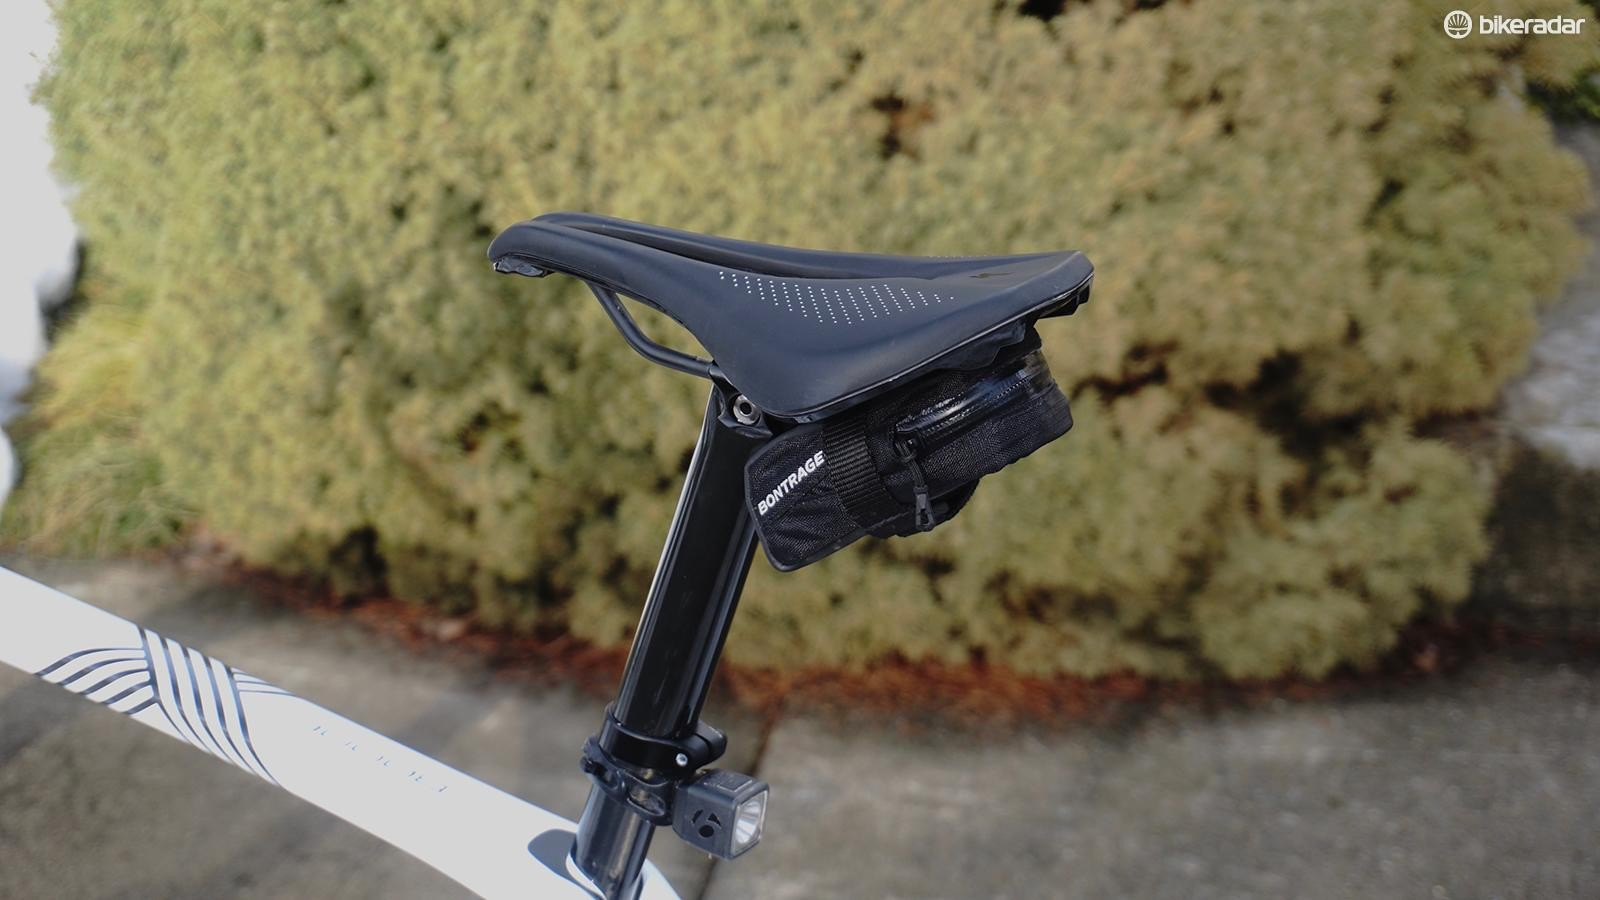 Bontrager's Elite Micro Seat Bag is small enough that it doesn't require a seatpost strap